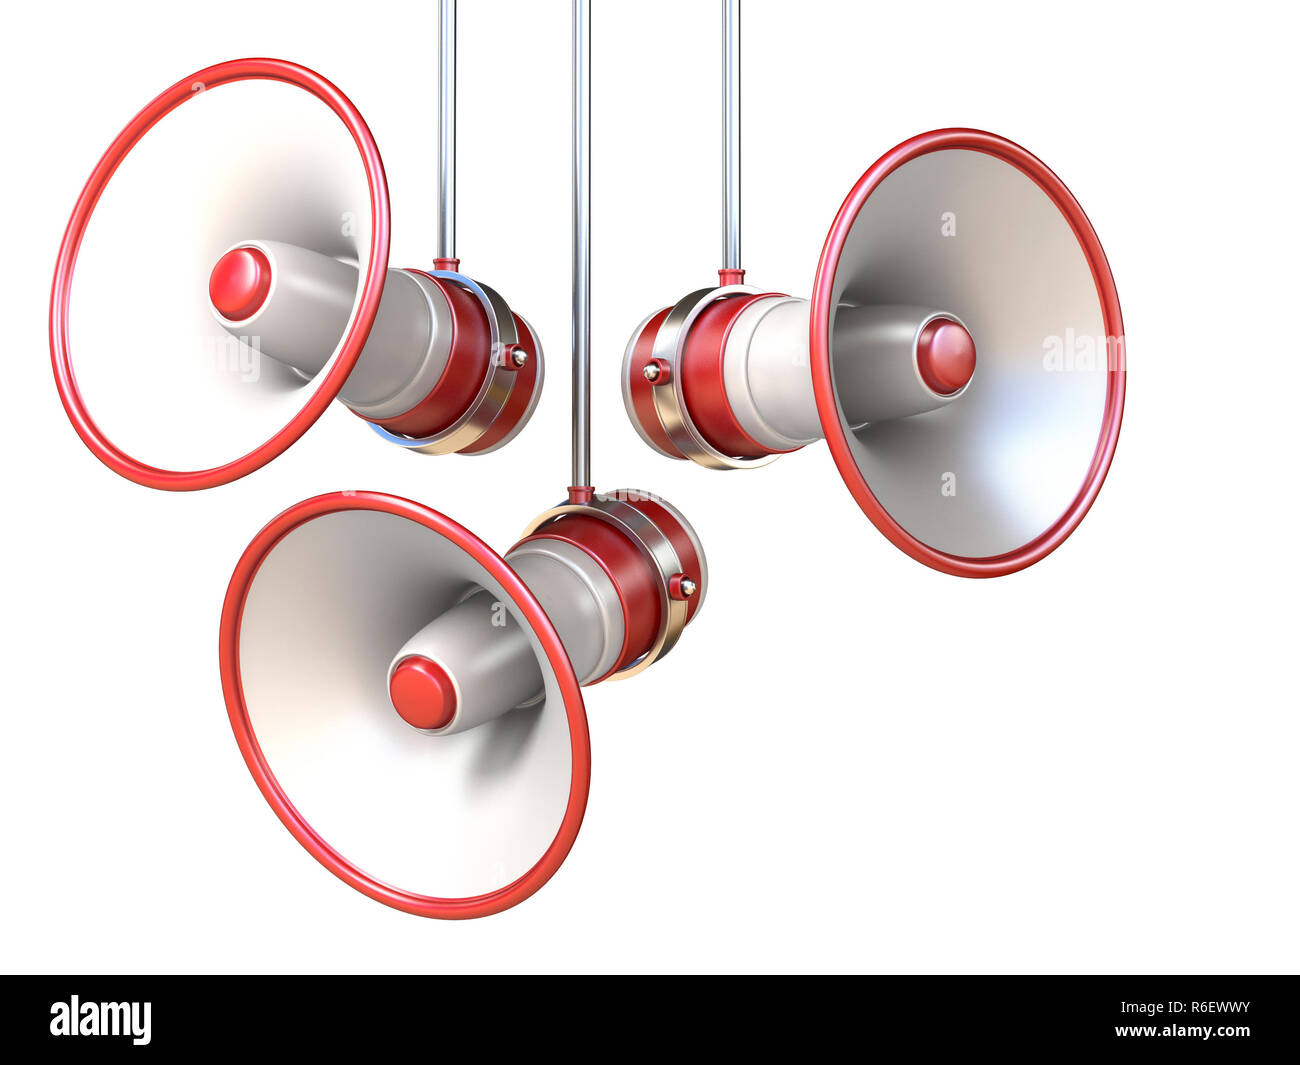 Three red and white megaphones 3D - Stock Image